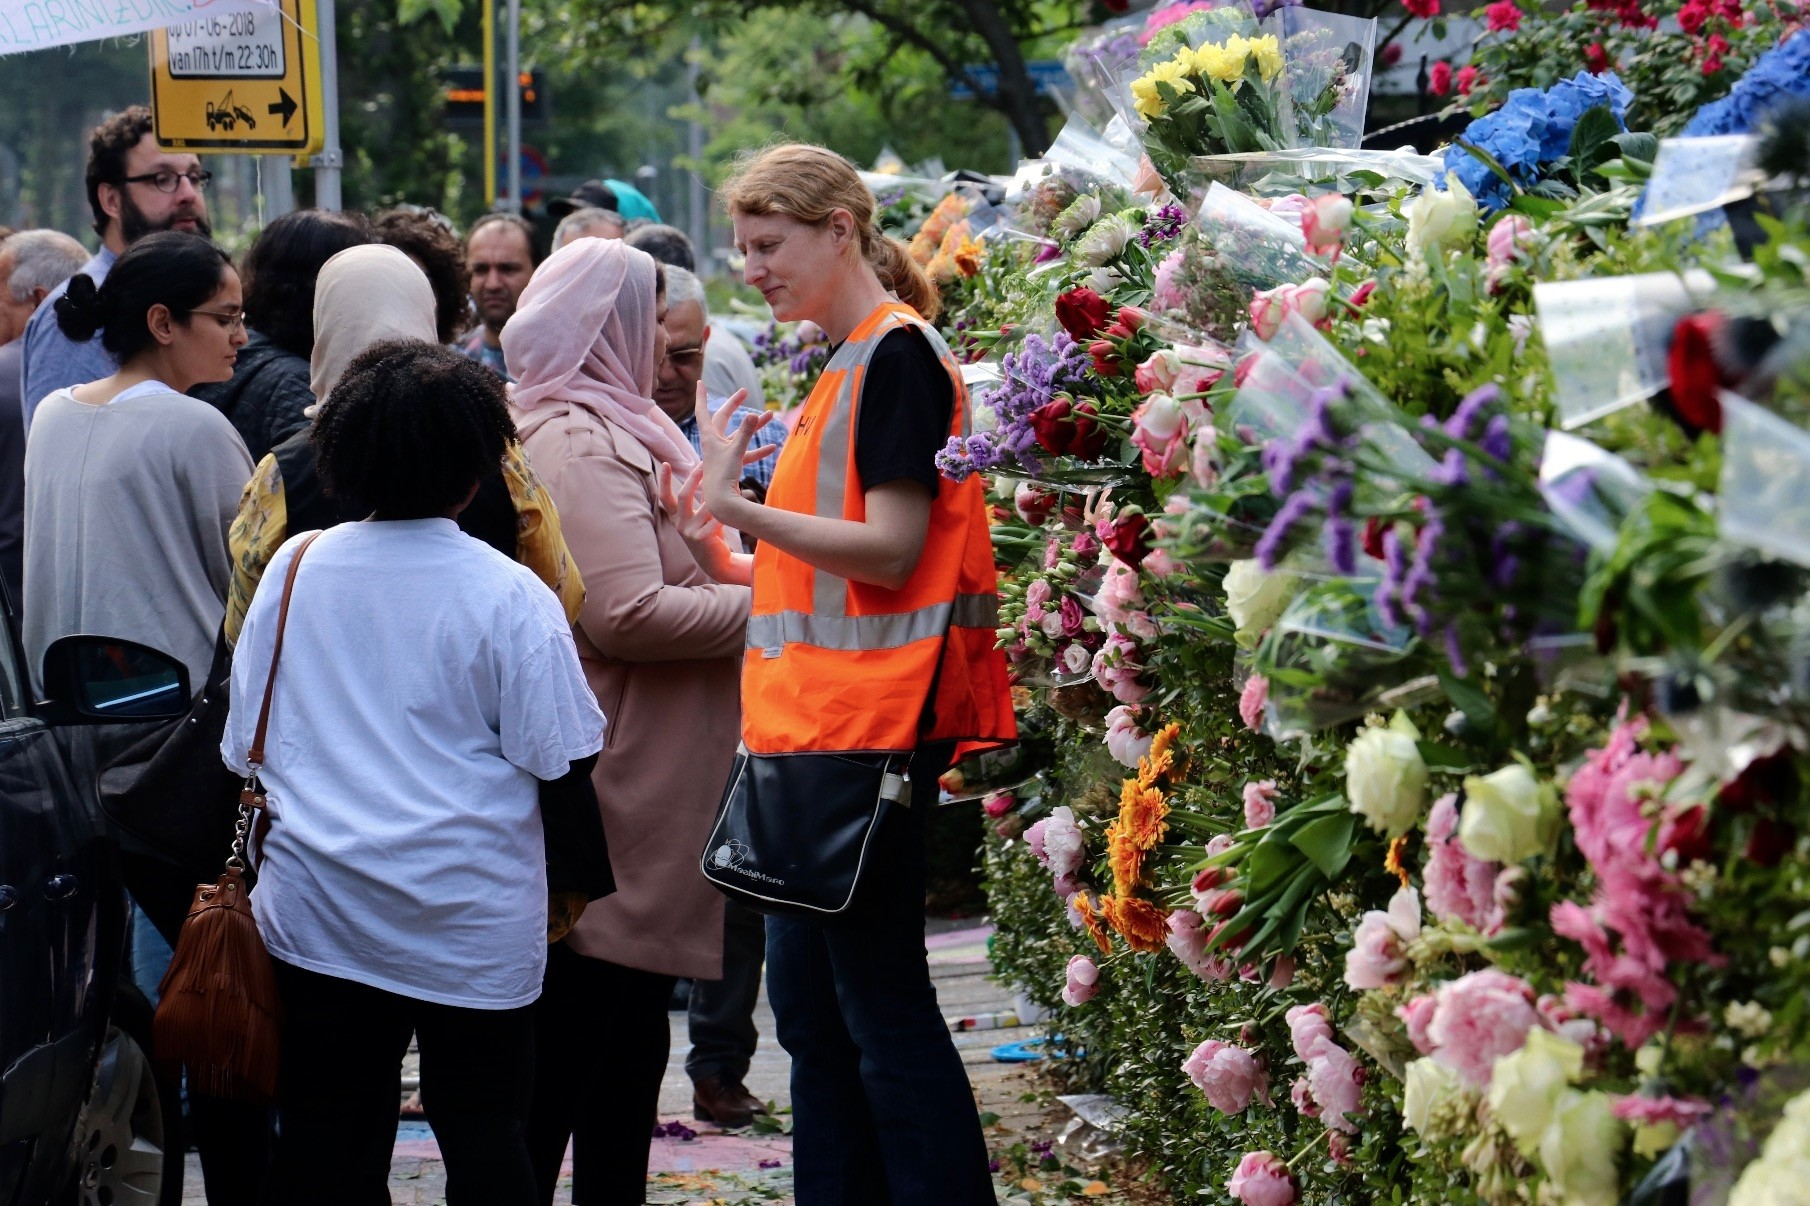 People leave flowers at the entrance of the Turkish mosque, Rotterdam to protest the anti-Islamic Pediga groupu2019s plan to roast pork in front of it during the fast-breaking meal, June 7.